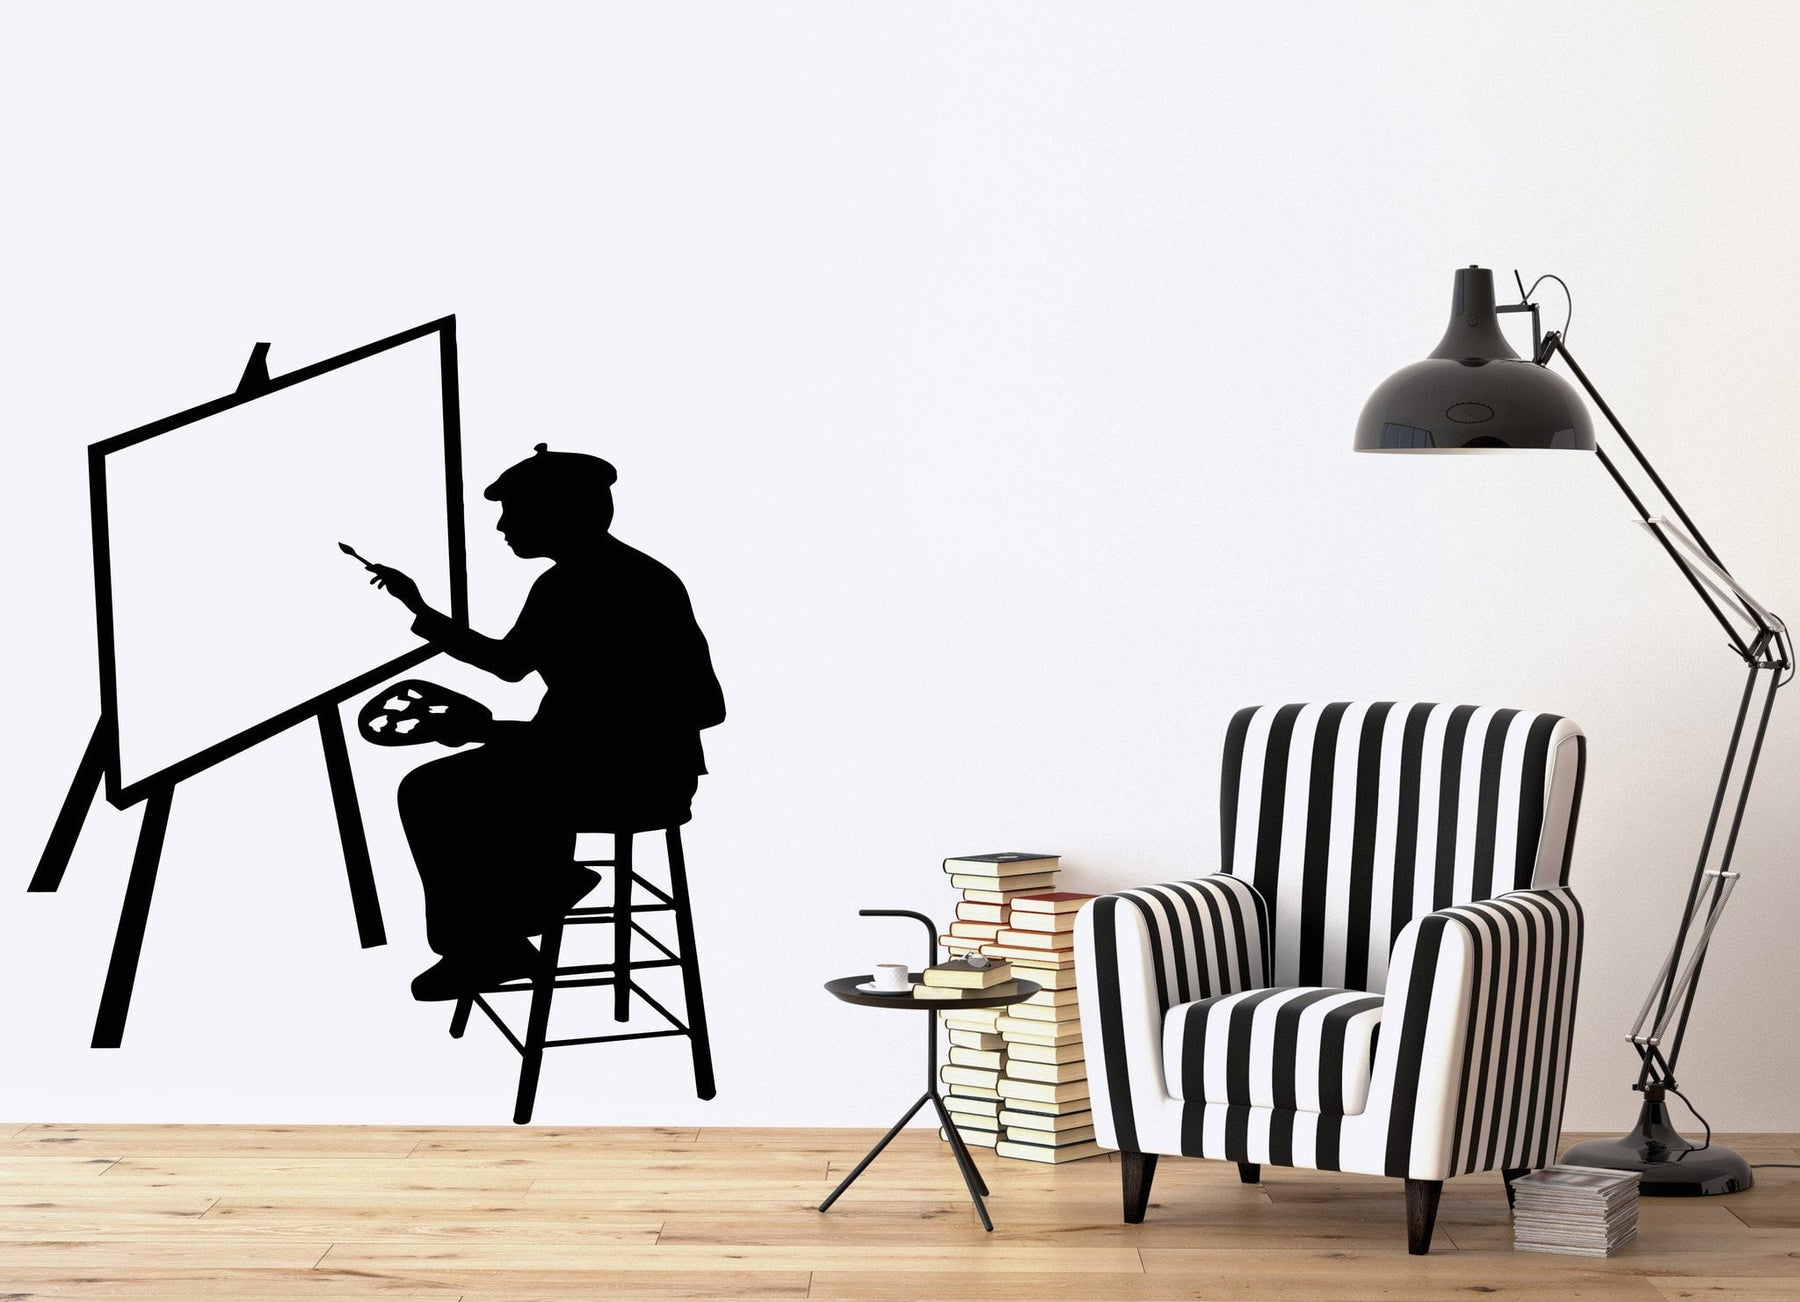 Vinyl Decal Artist Visual Arts Painting Museum Room Decoration Unique Gift (ig2653)